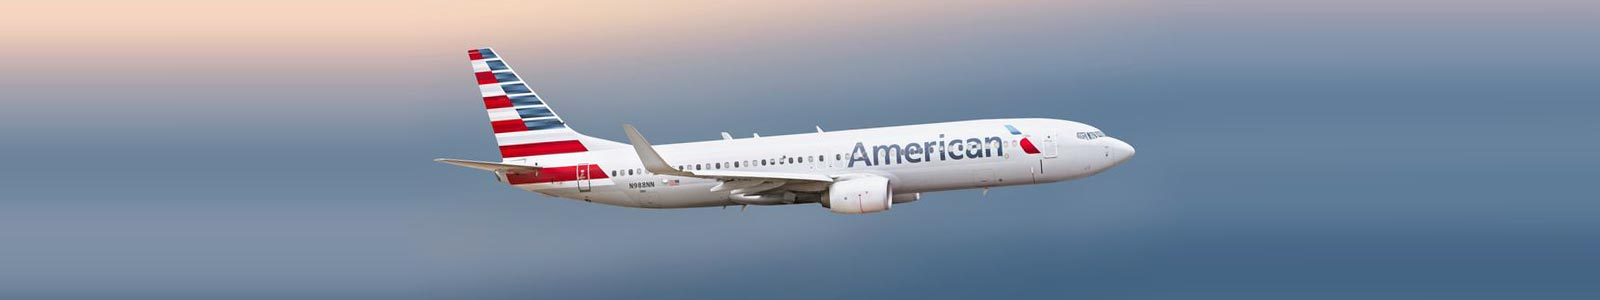 Book American Airlines Flights to India   FirstFlyTravel